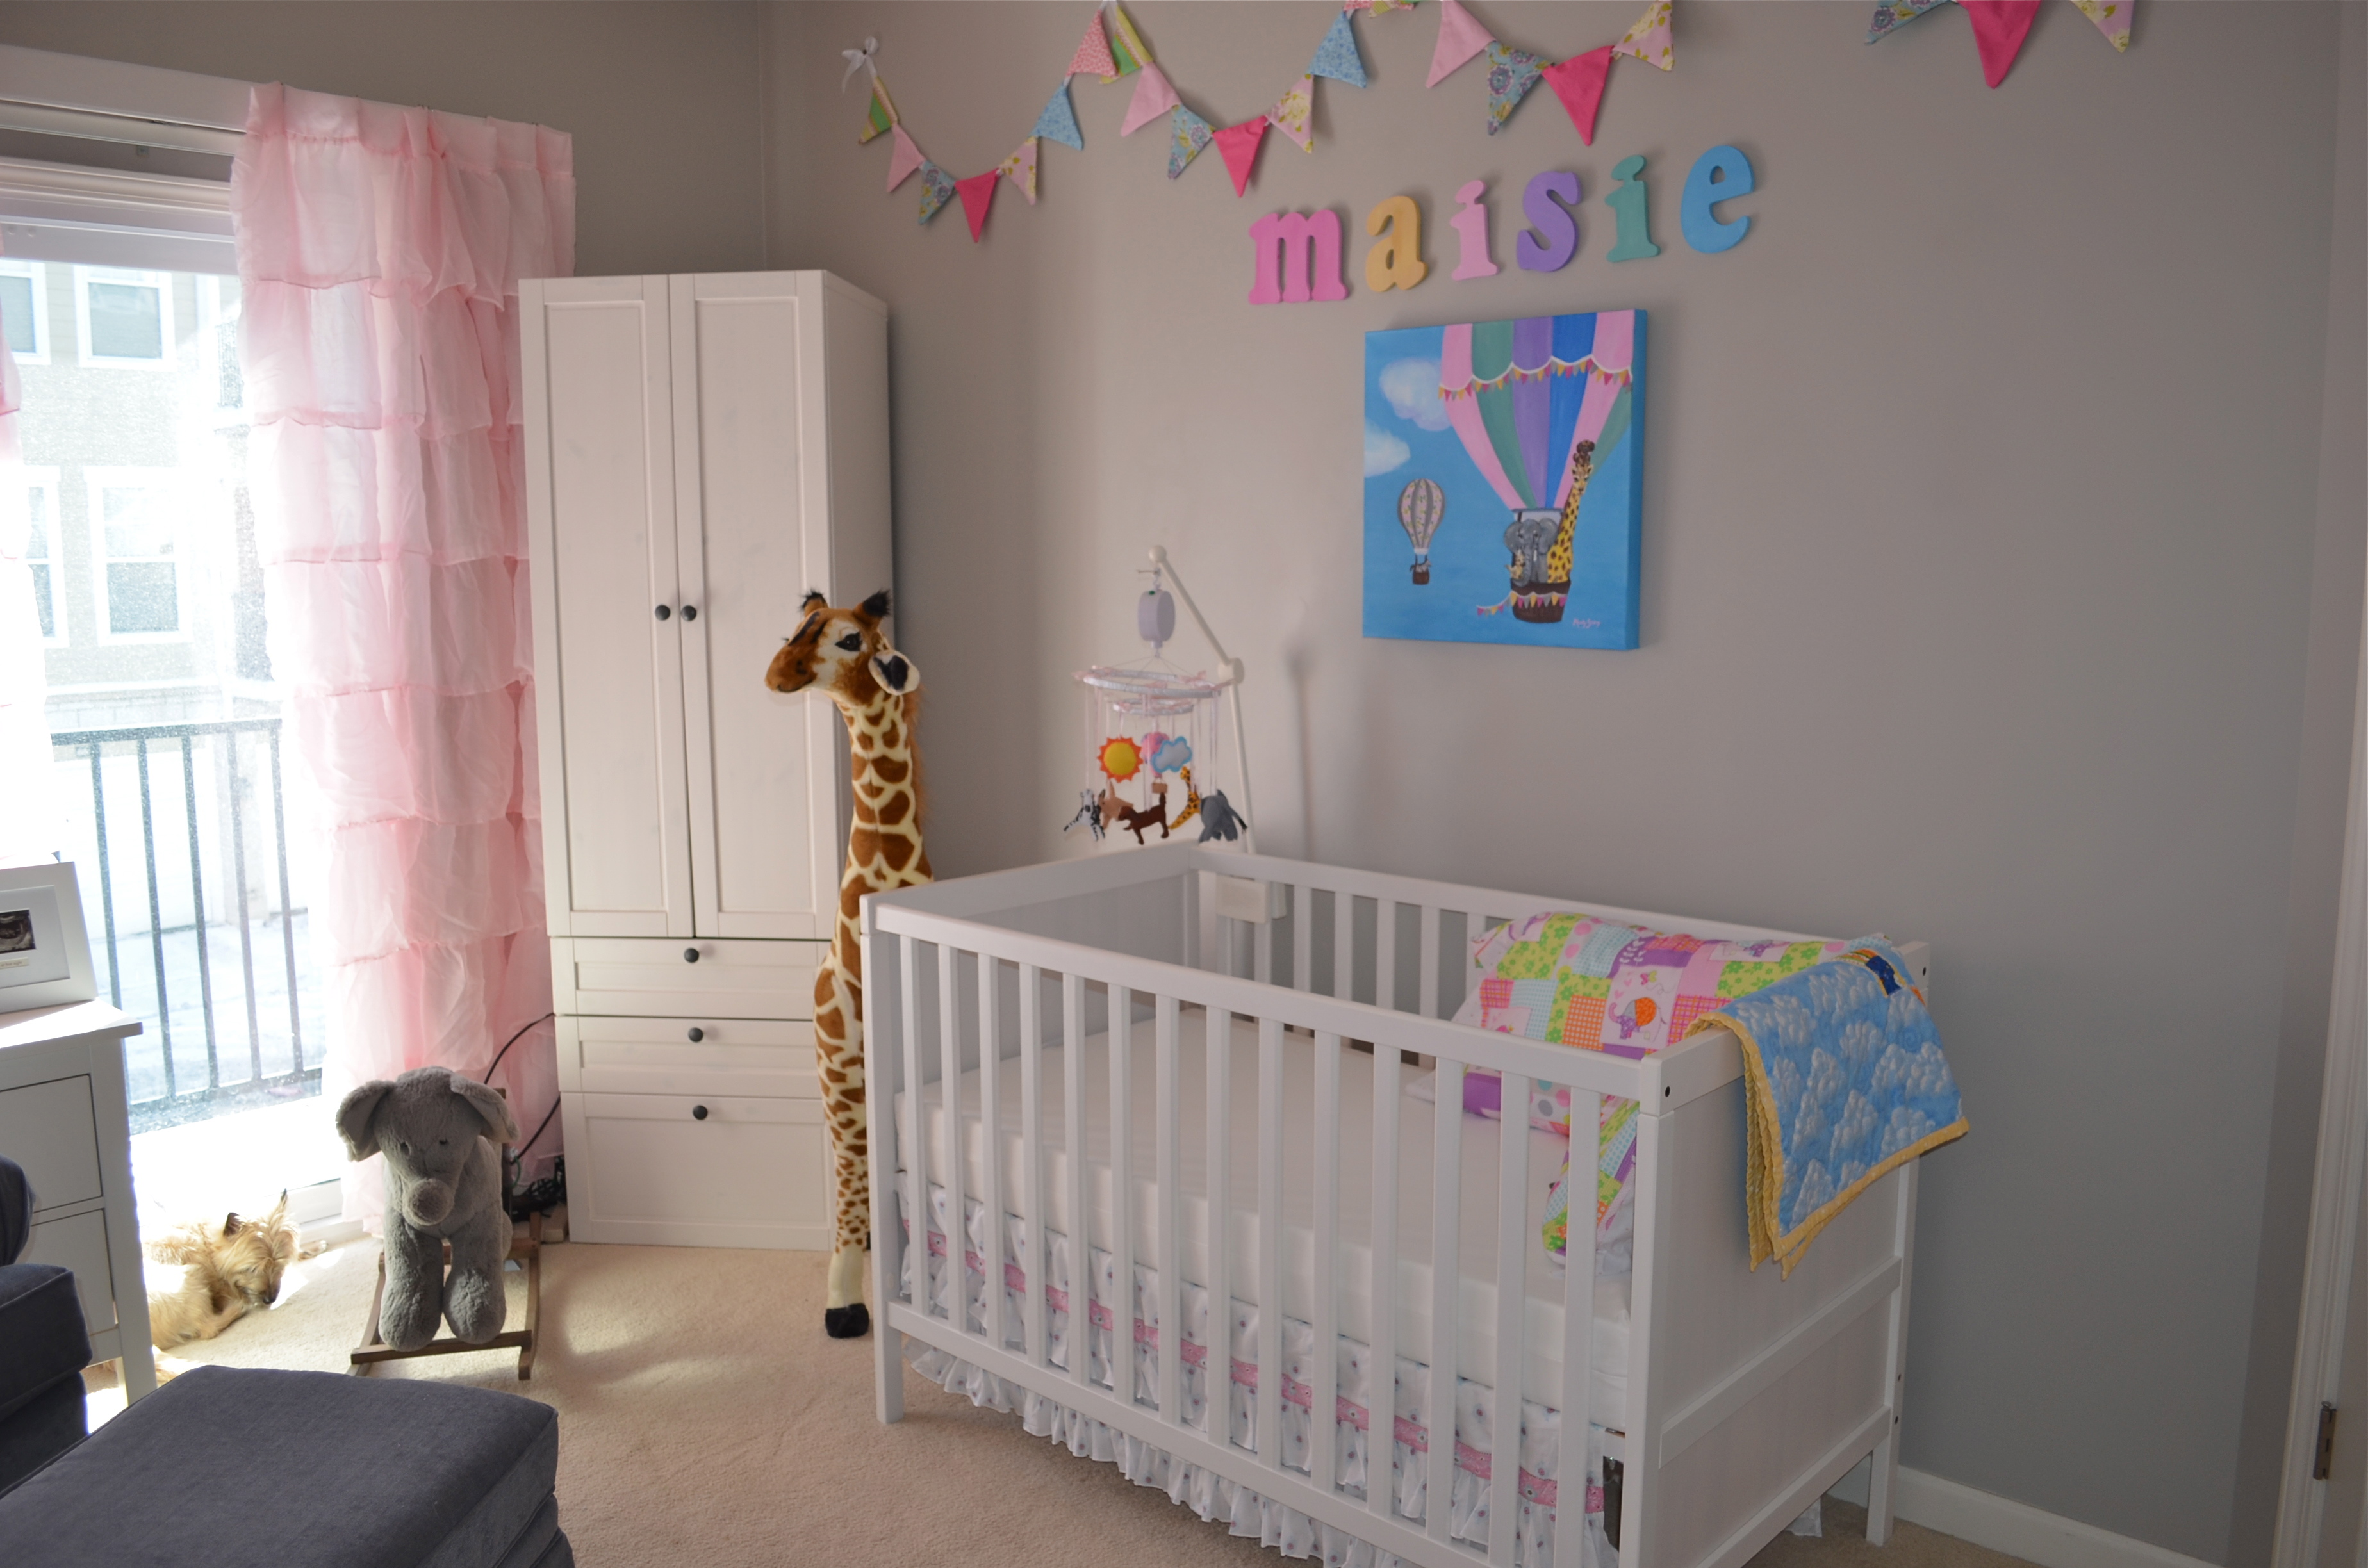 Grey, white, and pink are the main colors with flourishes of bright colors to make this nursery a happy place to be (hopefully even during middle of the night feedings).